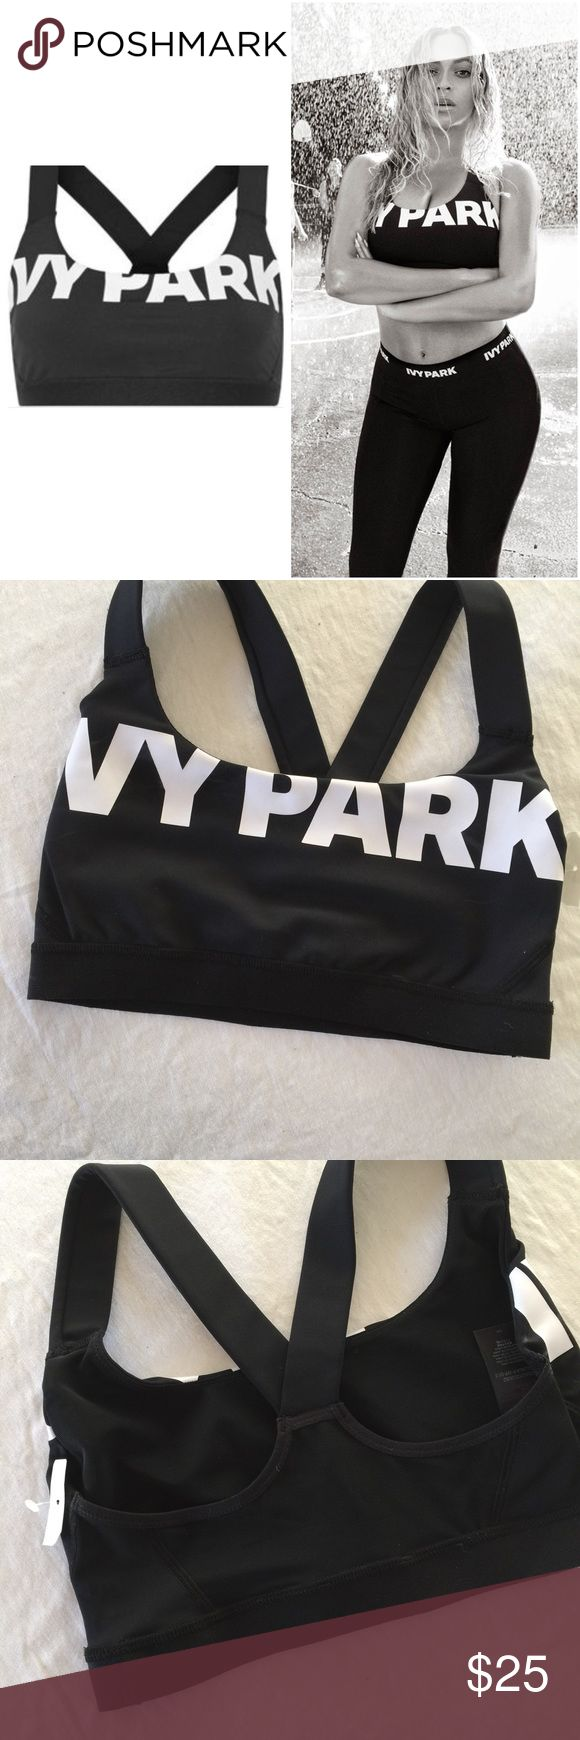 Ivy park, logo V, black mesh insert bra, small Ivy park, black, mesh, logo v insert sports bra, nwot, size small. check out my other ivy pak items, in my closet. 🚫no trades. This bra top comes designed with a sheer mesh panel to the back for ventilation, while a power mesh lining and flat-locked contour seam provide a supportive and streamlined shape. Crafted for performance, the technical make ensures a quick drying and durable finish. Finished with a statement Ivy Park logo to the chest…